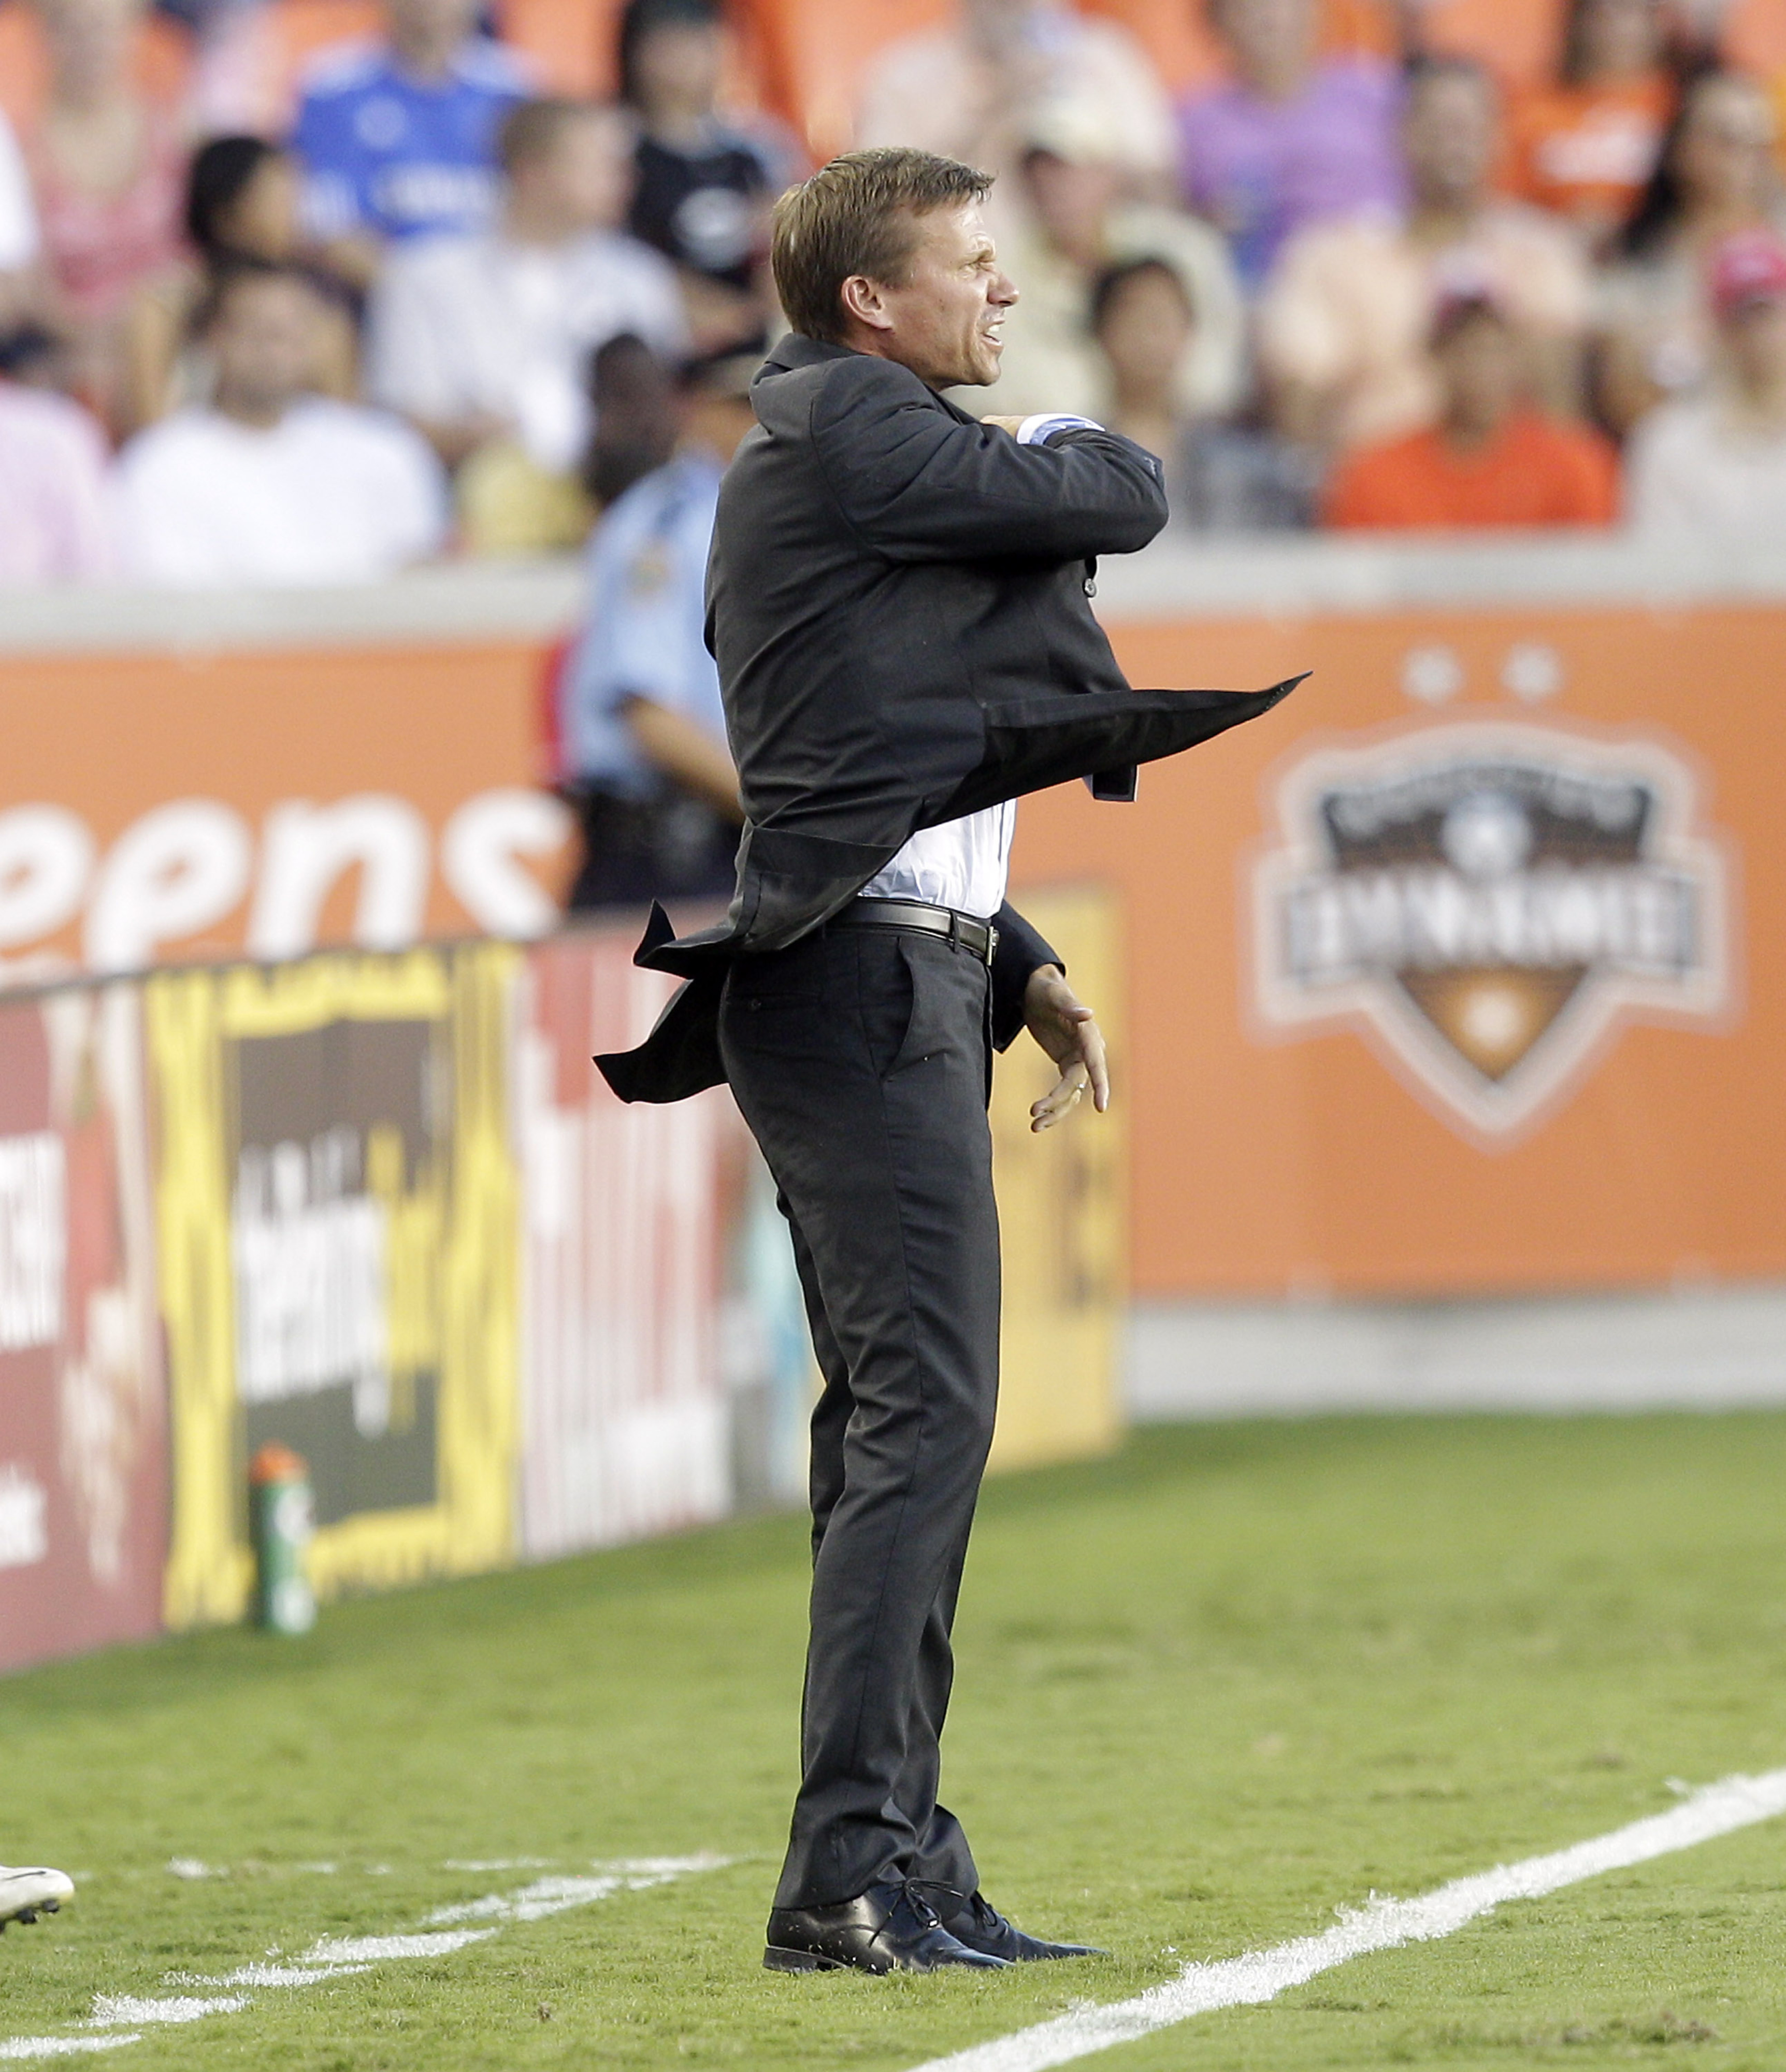 HOUSTON - JULY 21:  Montreal Impact coach Jesse Marsch has words with the referee during the first half against the Houston Dynamo at BBVA Compass Stadium on July 21, 2012 in Houston, Texas.  (Photo by Bob Levey/Getty Images)